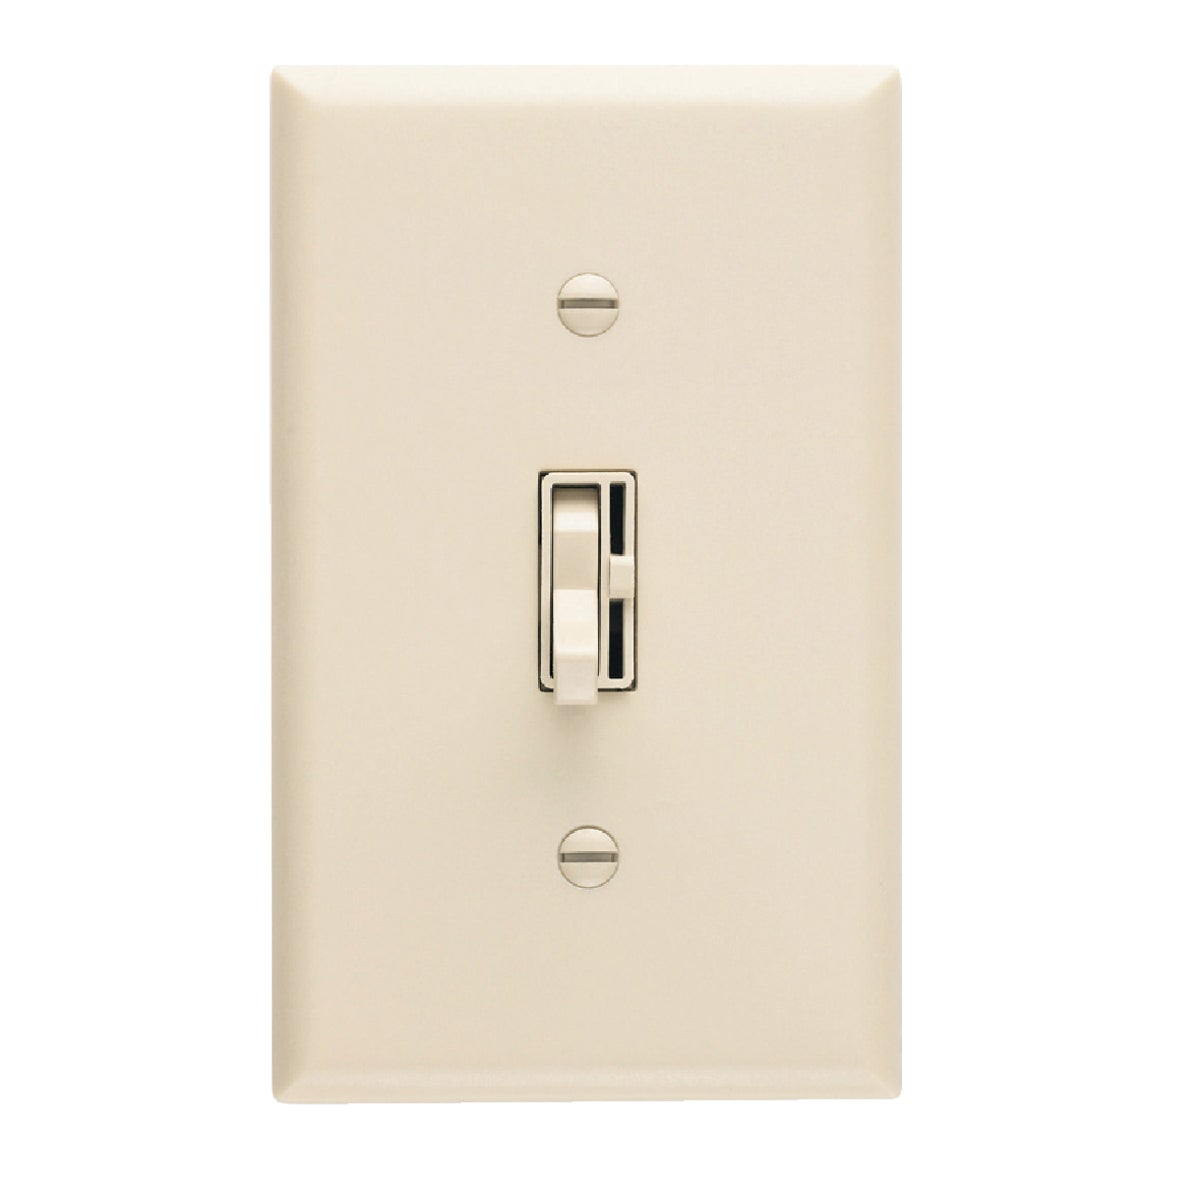 IV 3-WAY SLIDE DIMMER